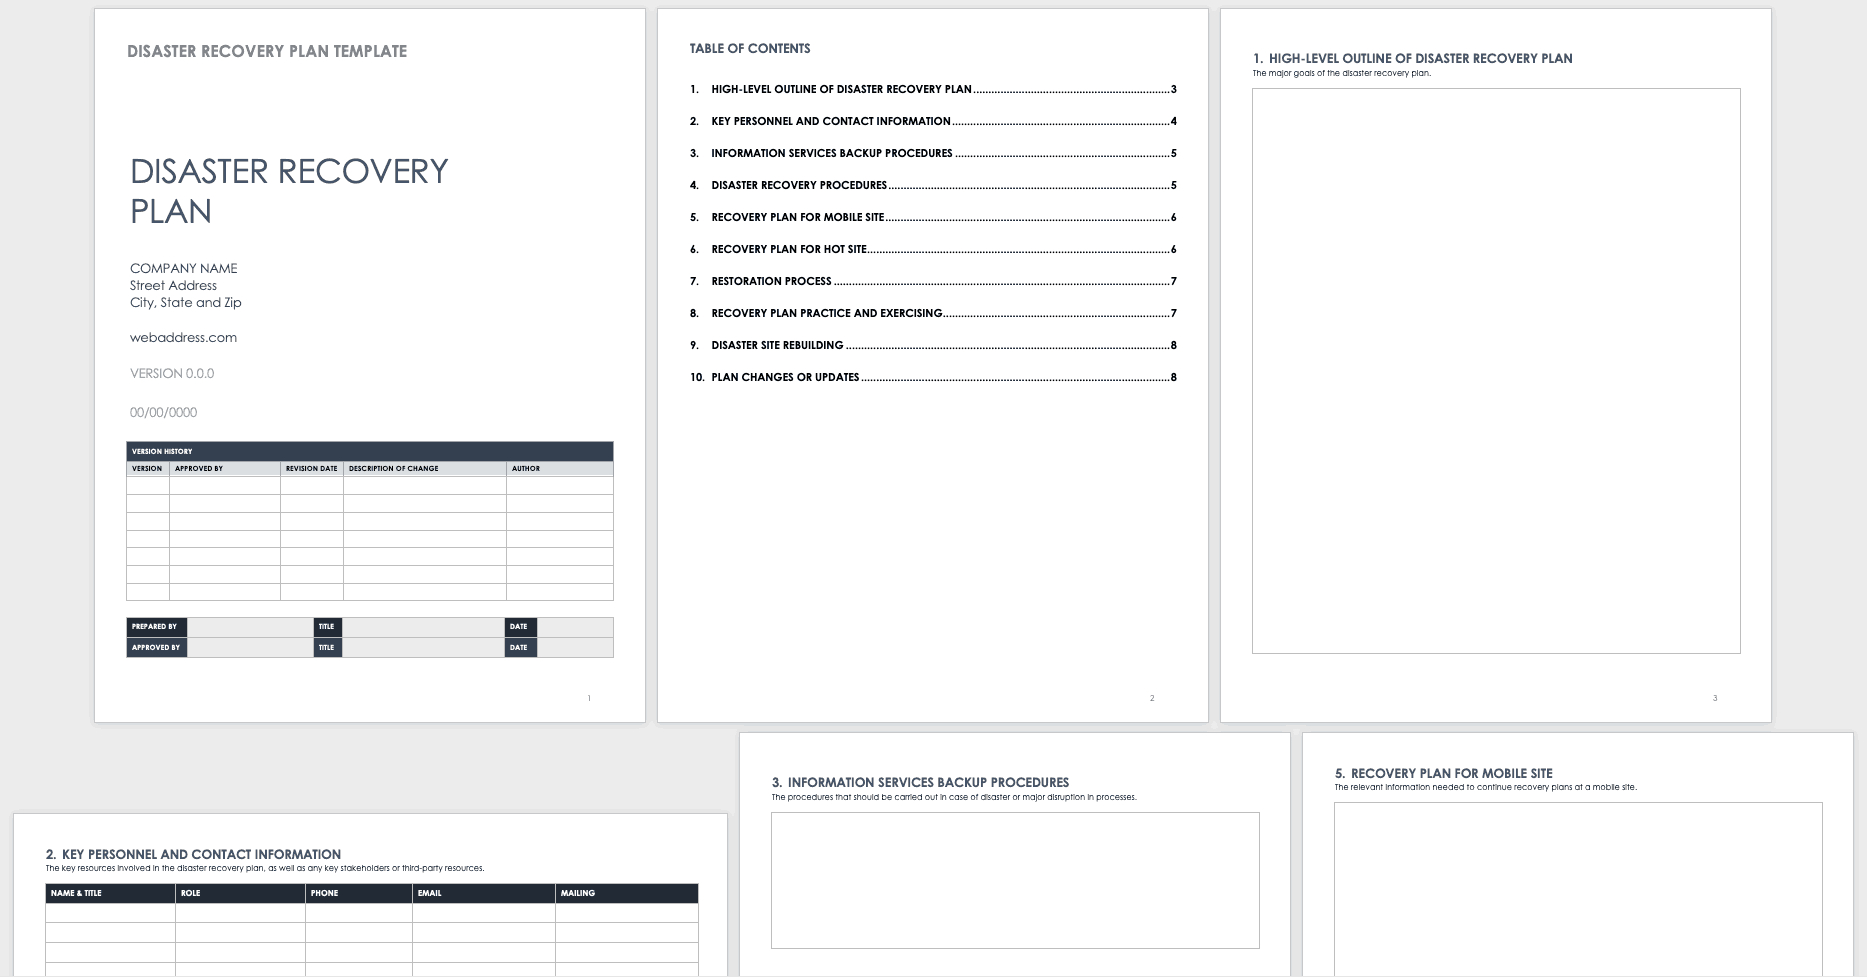 Free Disaster Recovery Plan Templates   Smartsheet With Disaster Recovery Plan Template For Small Business